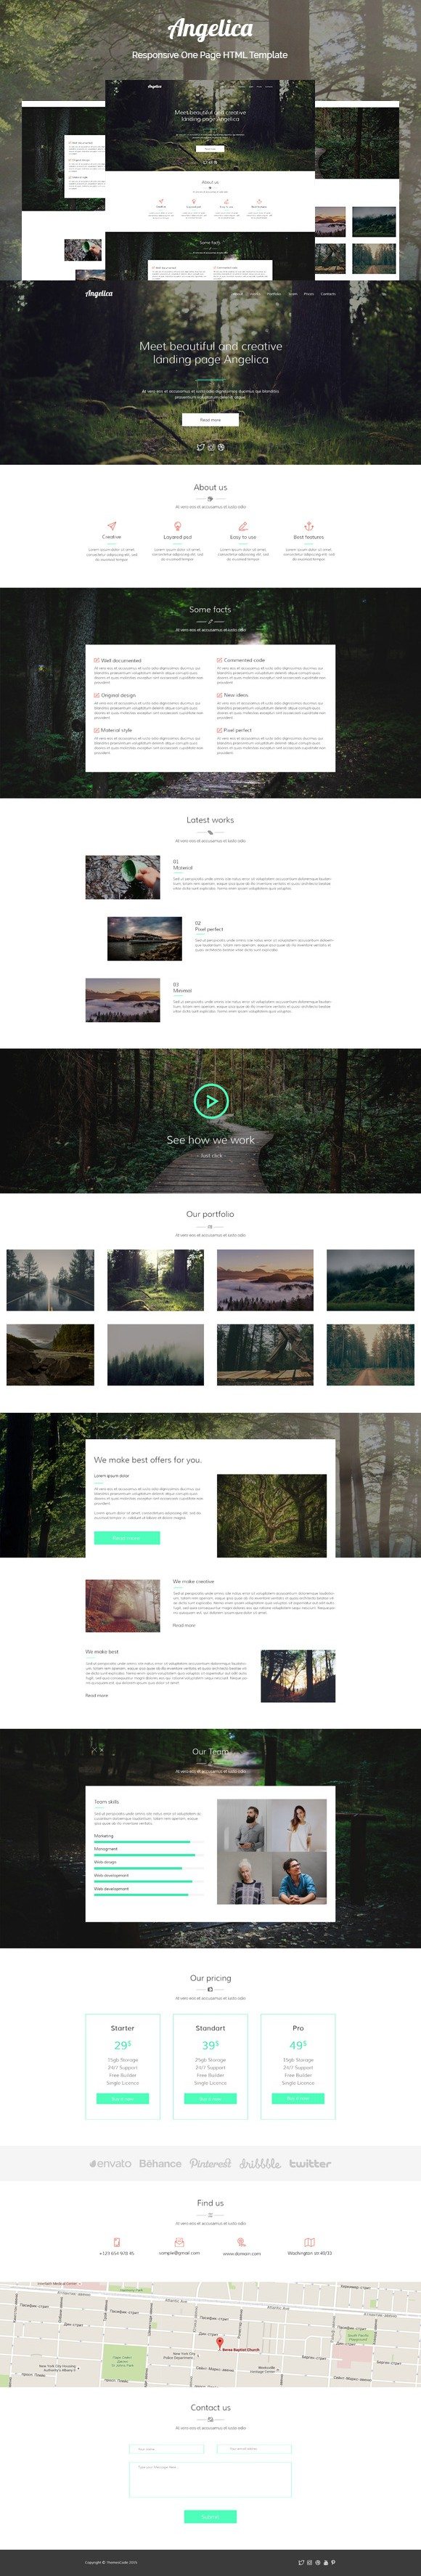 Angelica - One Page HTML Template. HTML/CSS Themes. $15.00 | HTML ...